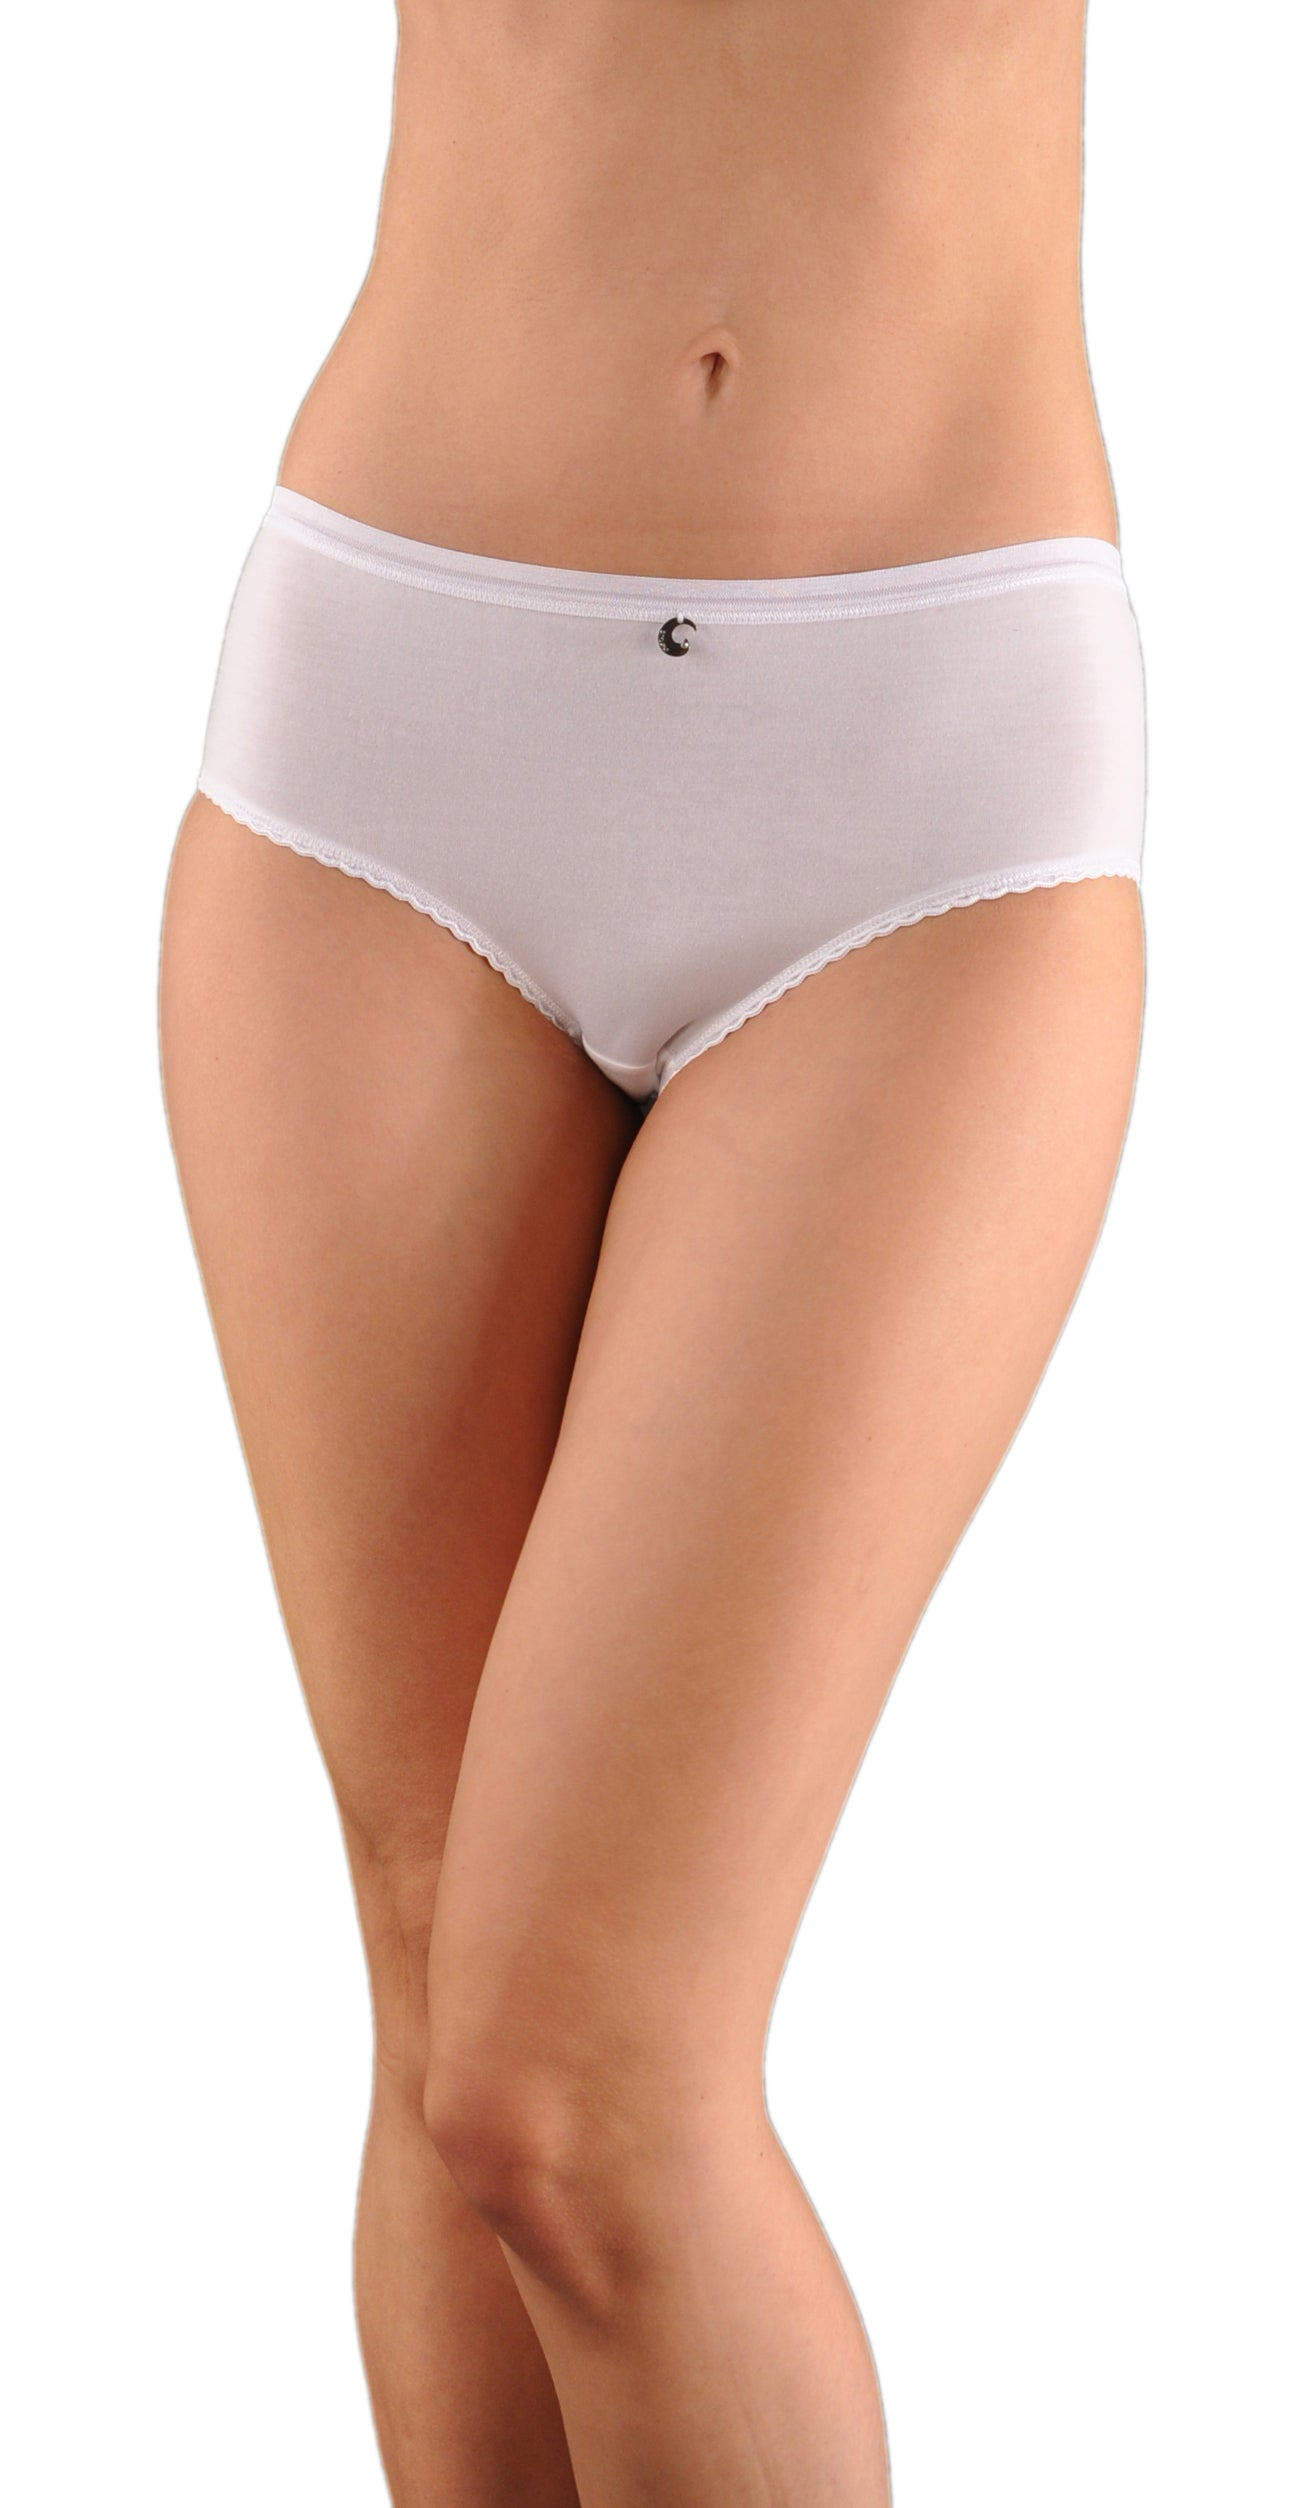 Kabbaz-Kelly Pure Elegance Luxury Maxi Panty